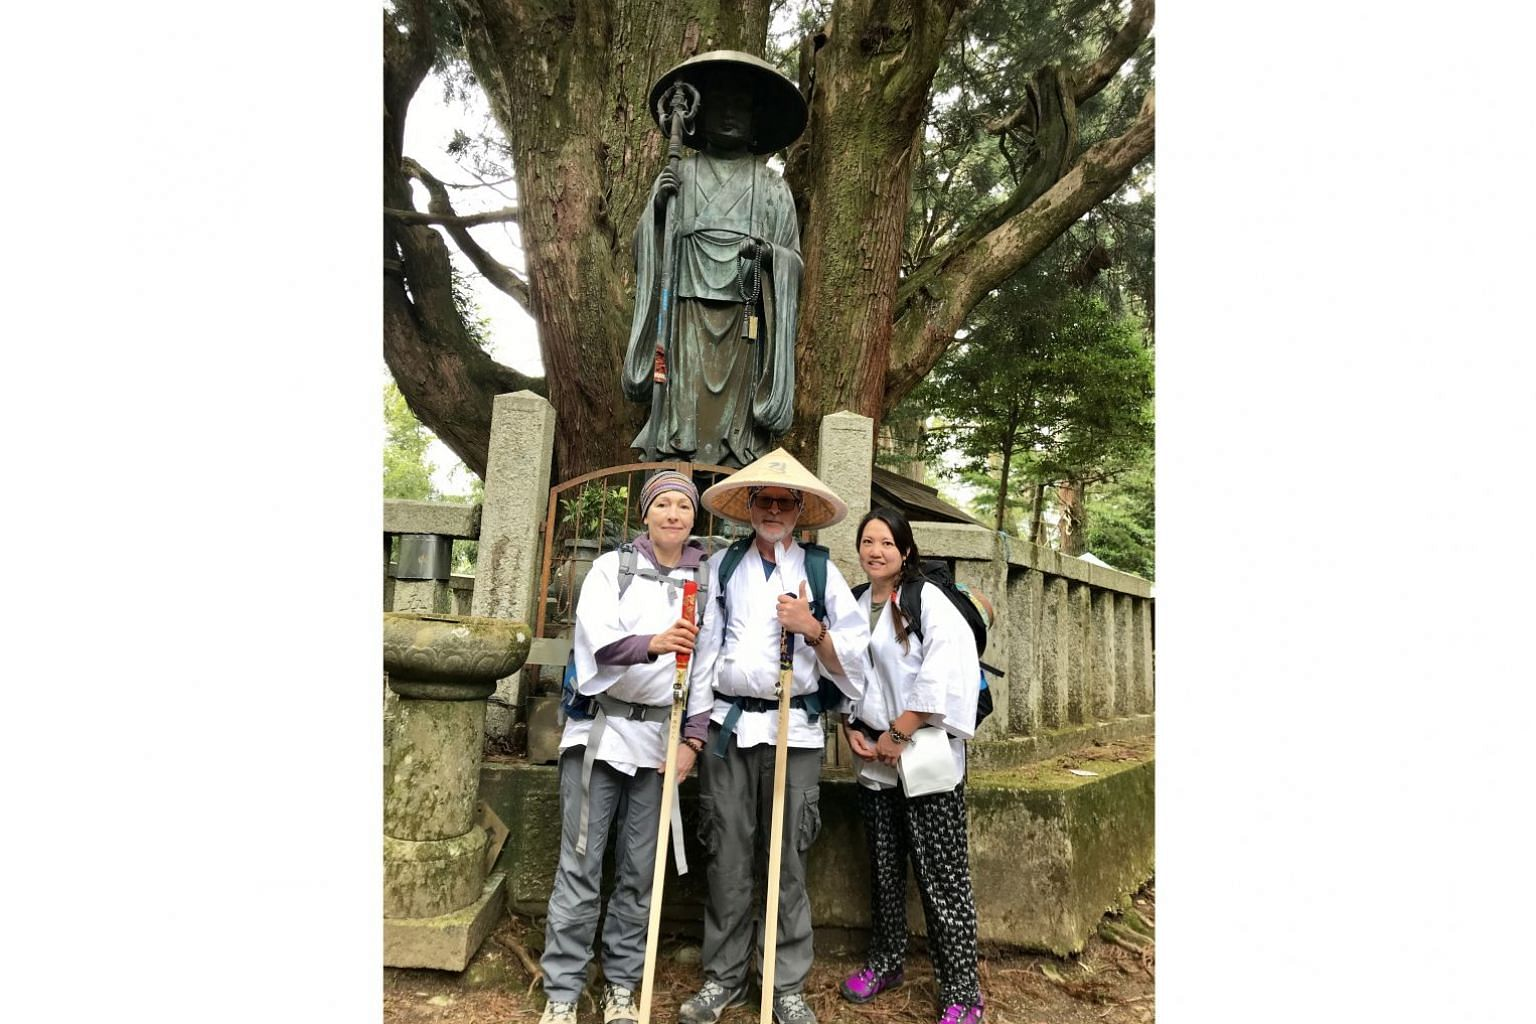 Writer Gary Hayden on the Shikoku pilgrimage with his wife Wendy (left) and their friend Lorraine. The pilgrimage is often done in four stages and the writer has completed the first one and plans to complete the remaining stages over the next twelve month